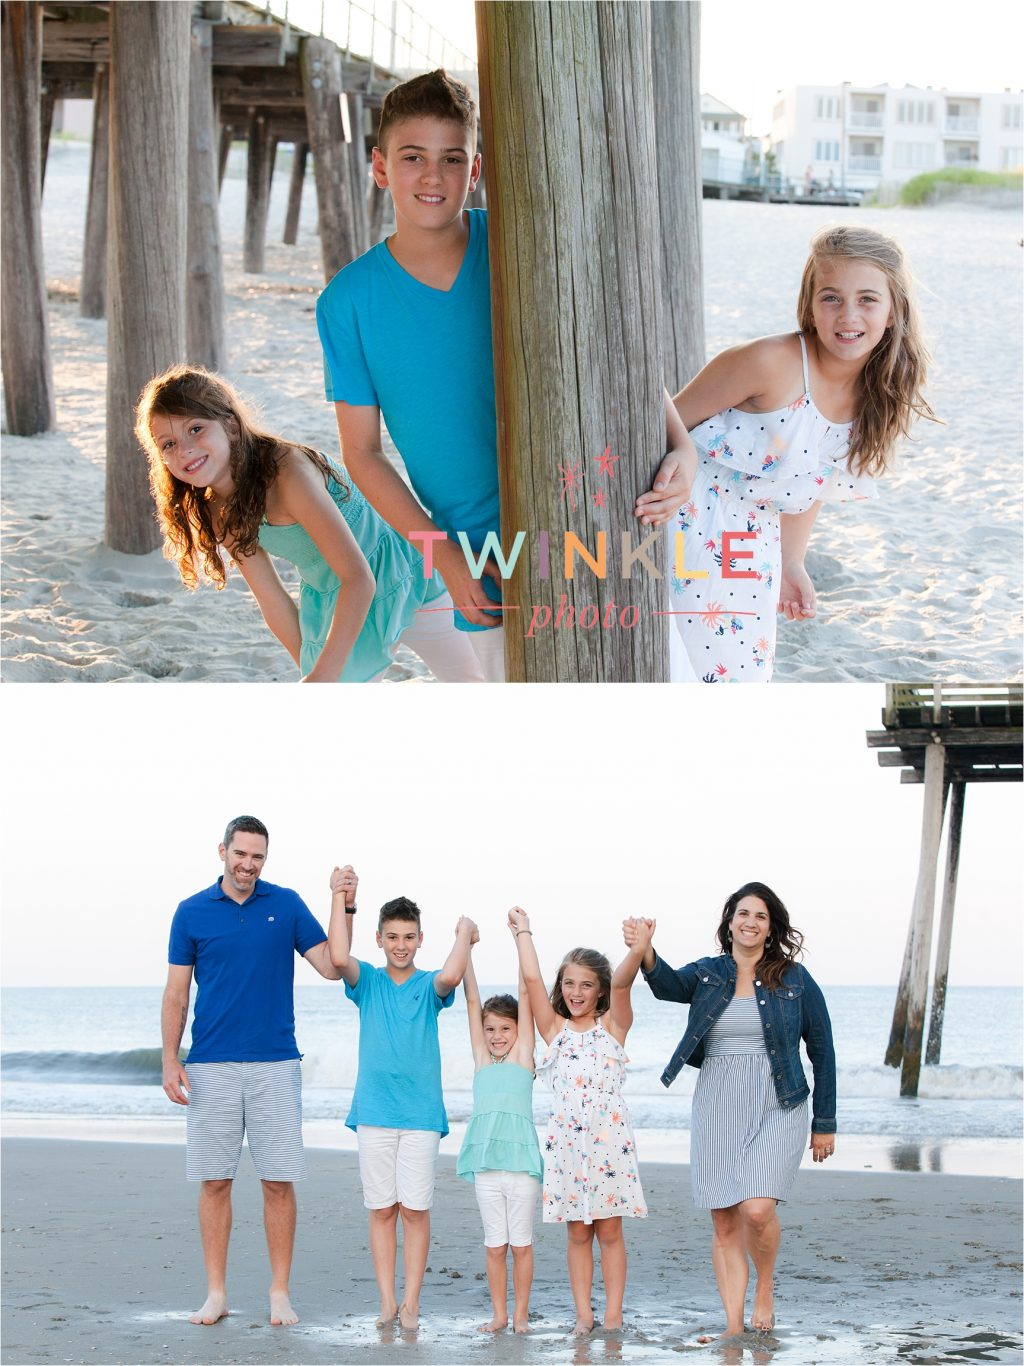 Avalon Stone Harbor Wildwood Ocean City NJ OCNJ New Jersey Beach Family Portrait Photographer Photography Twinkle Photo-12